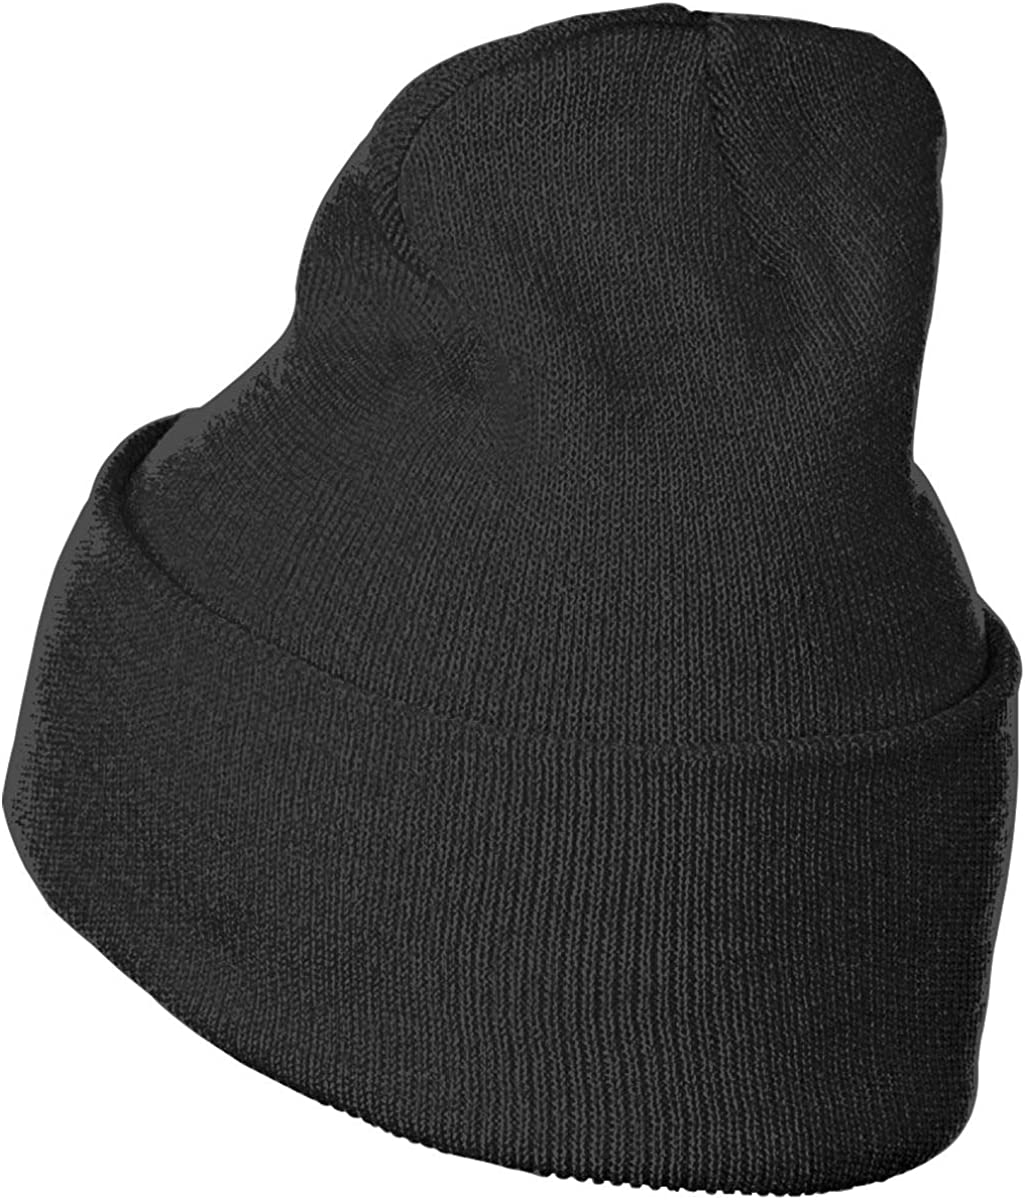 I Love Spain Men /& Women Knit Hats Stretchy /& Soft Ski Cap Beanie